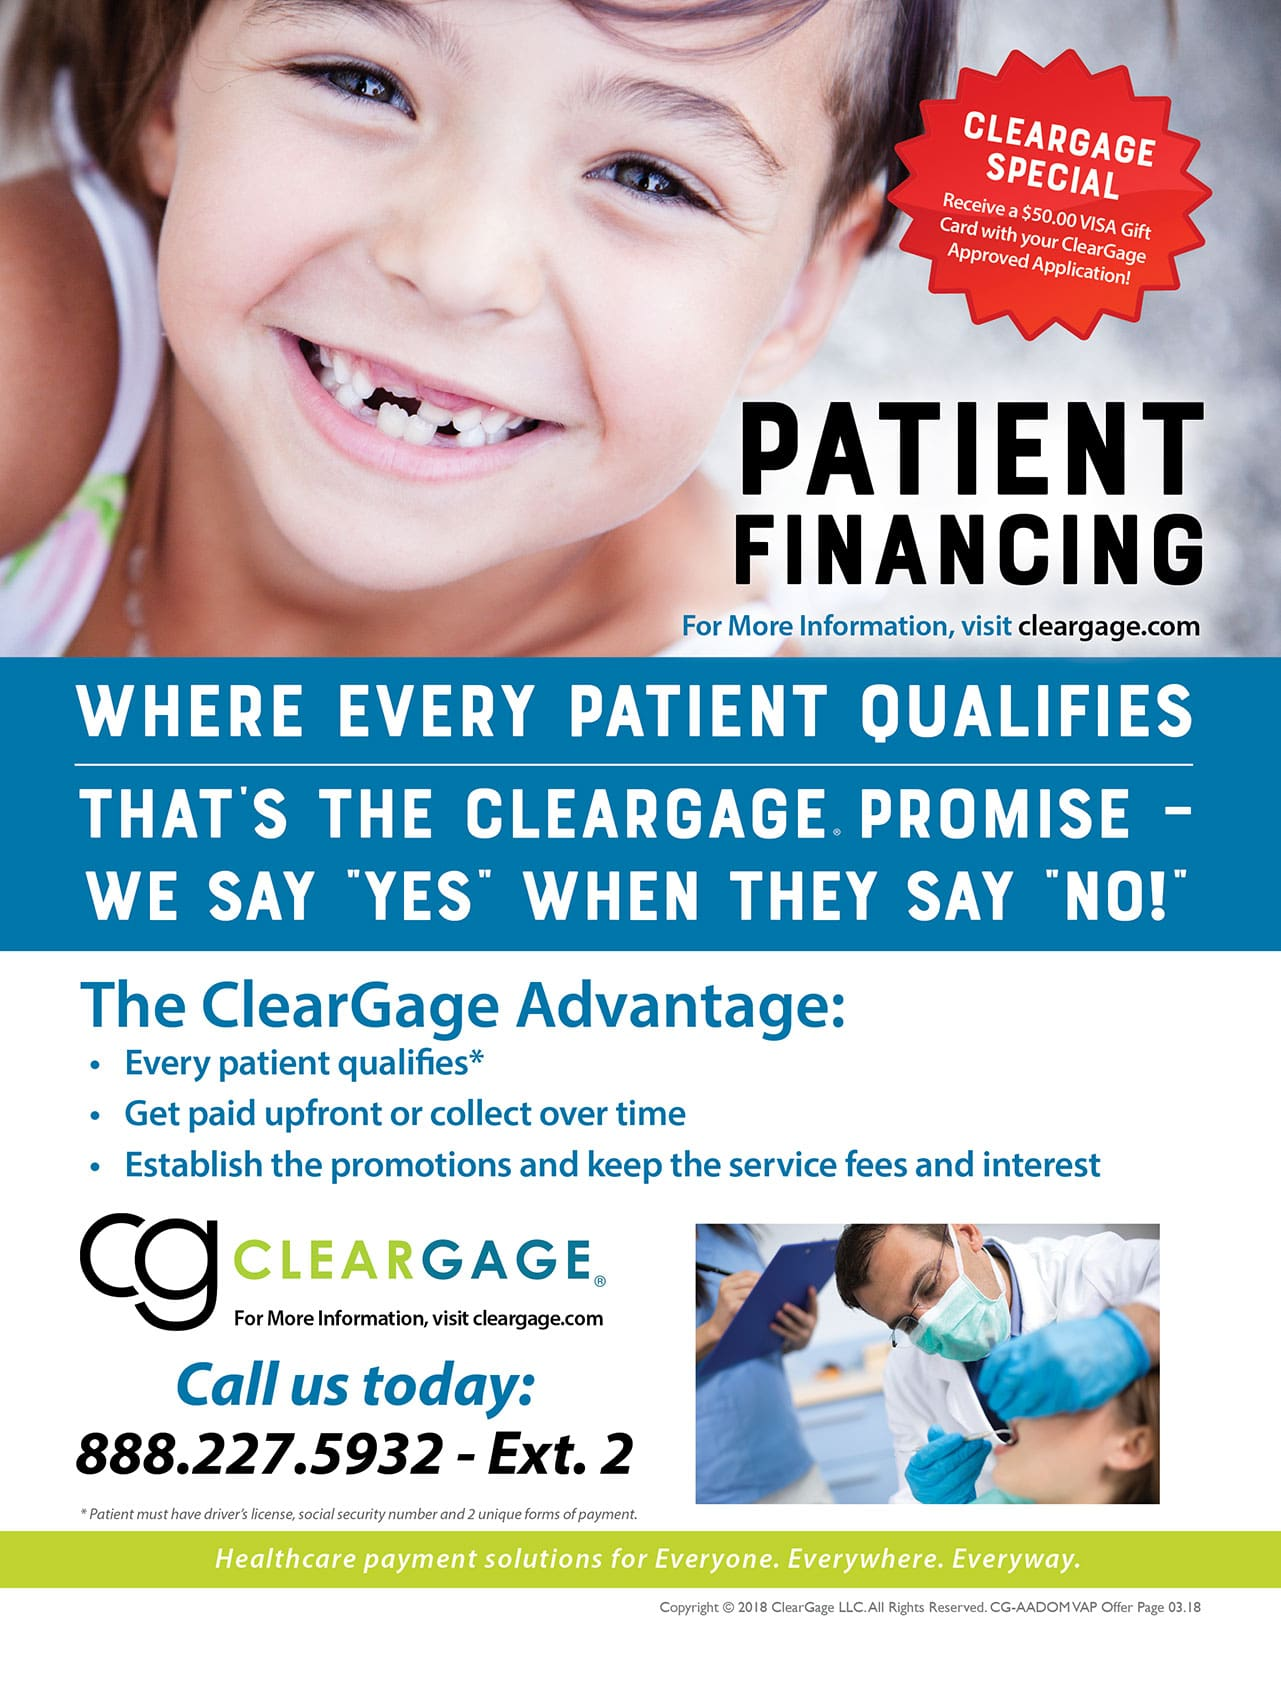 Cleargage special - just for being an AADOM member. Receive a $50 Visa gift card with your approved contract